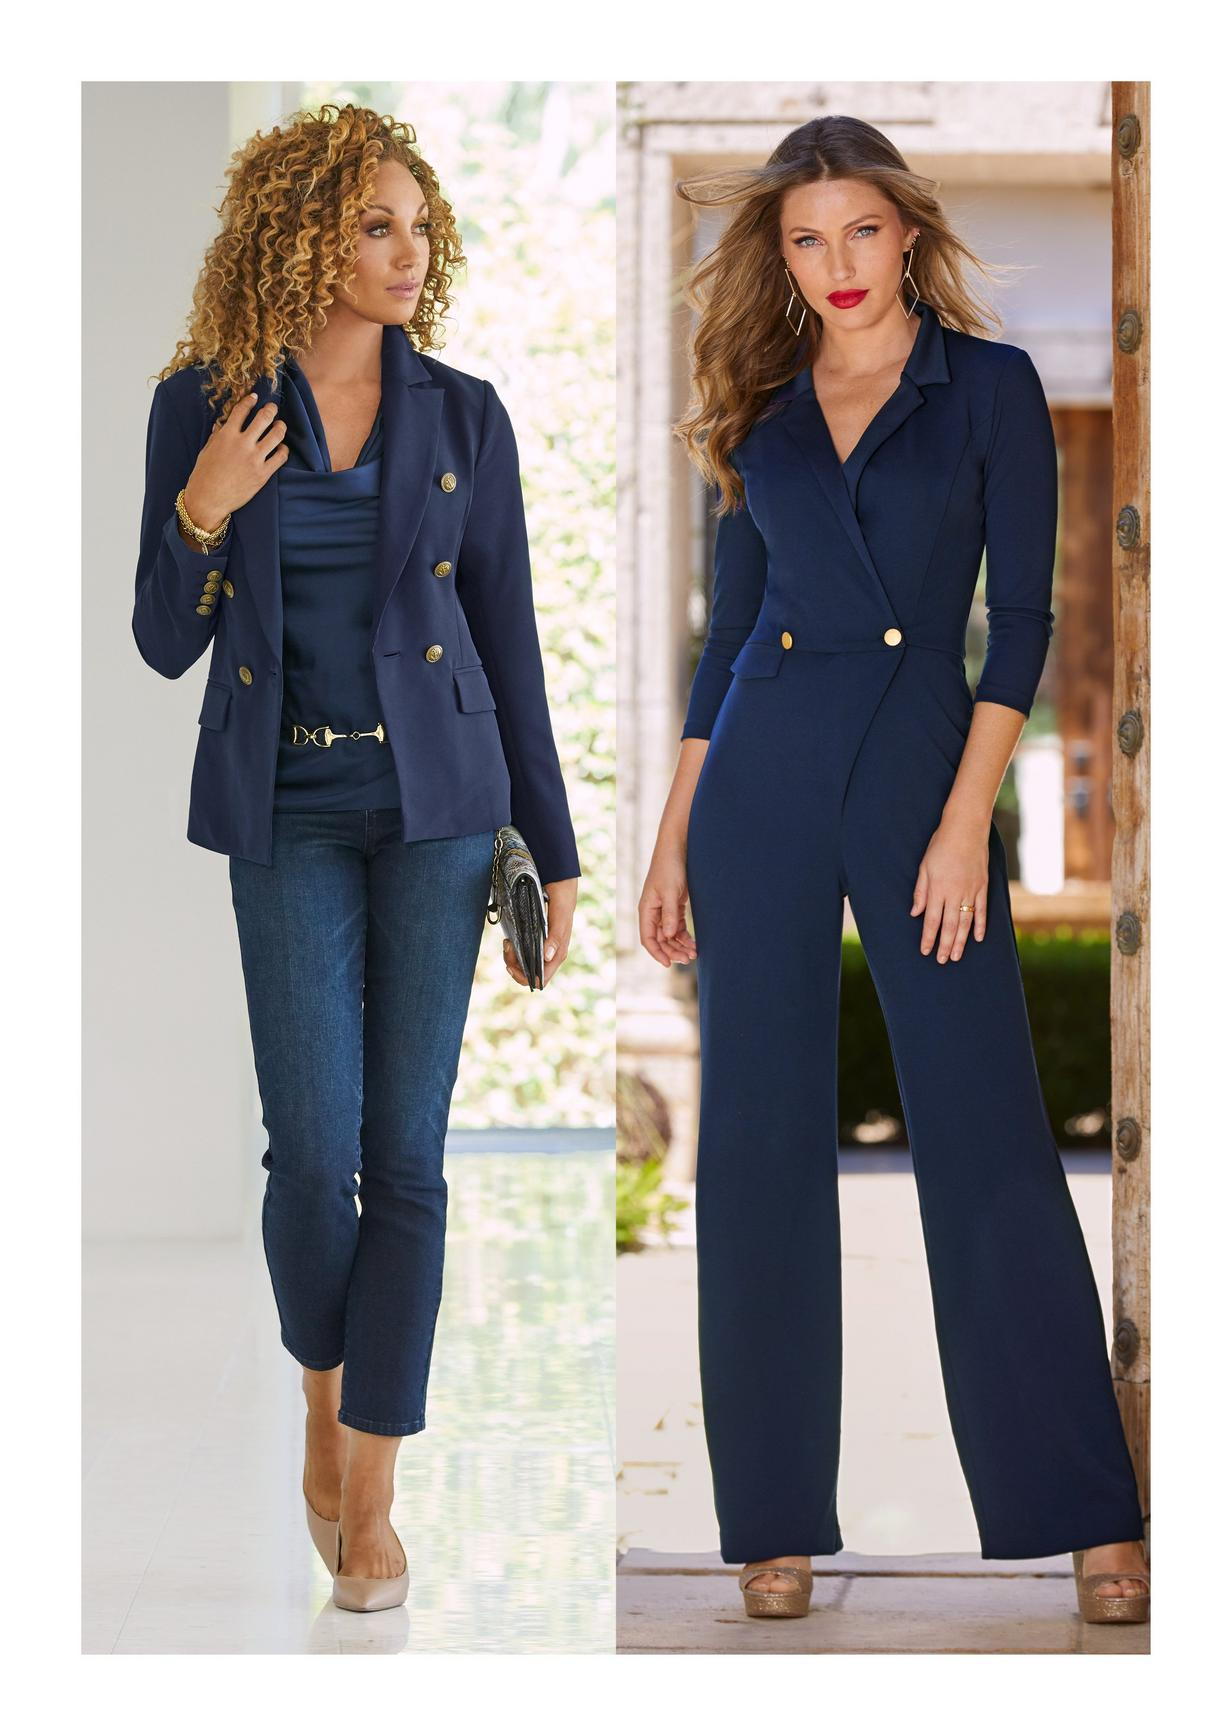 left: navy blue blazer over tank top and jeans. Right: navy blue jumpsuit